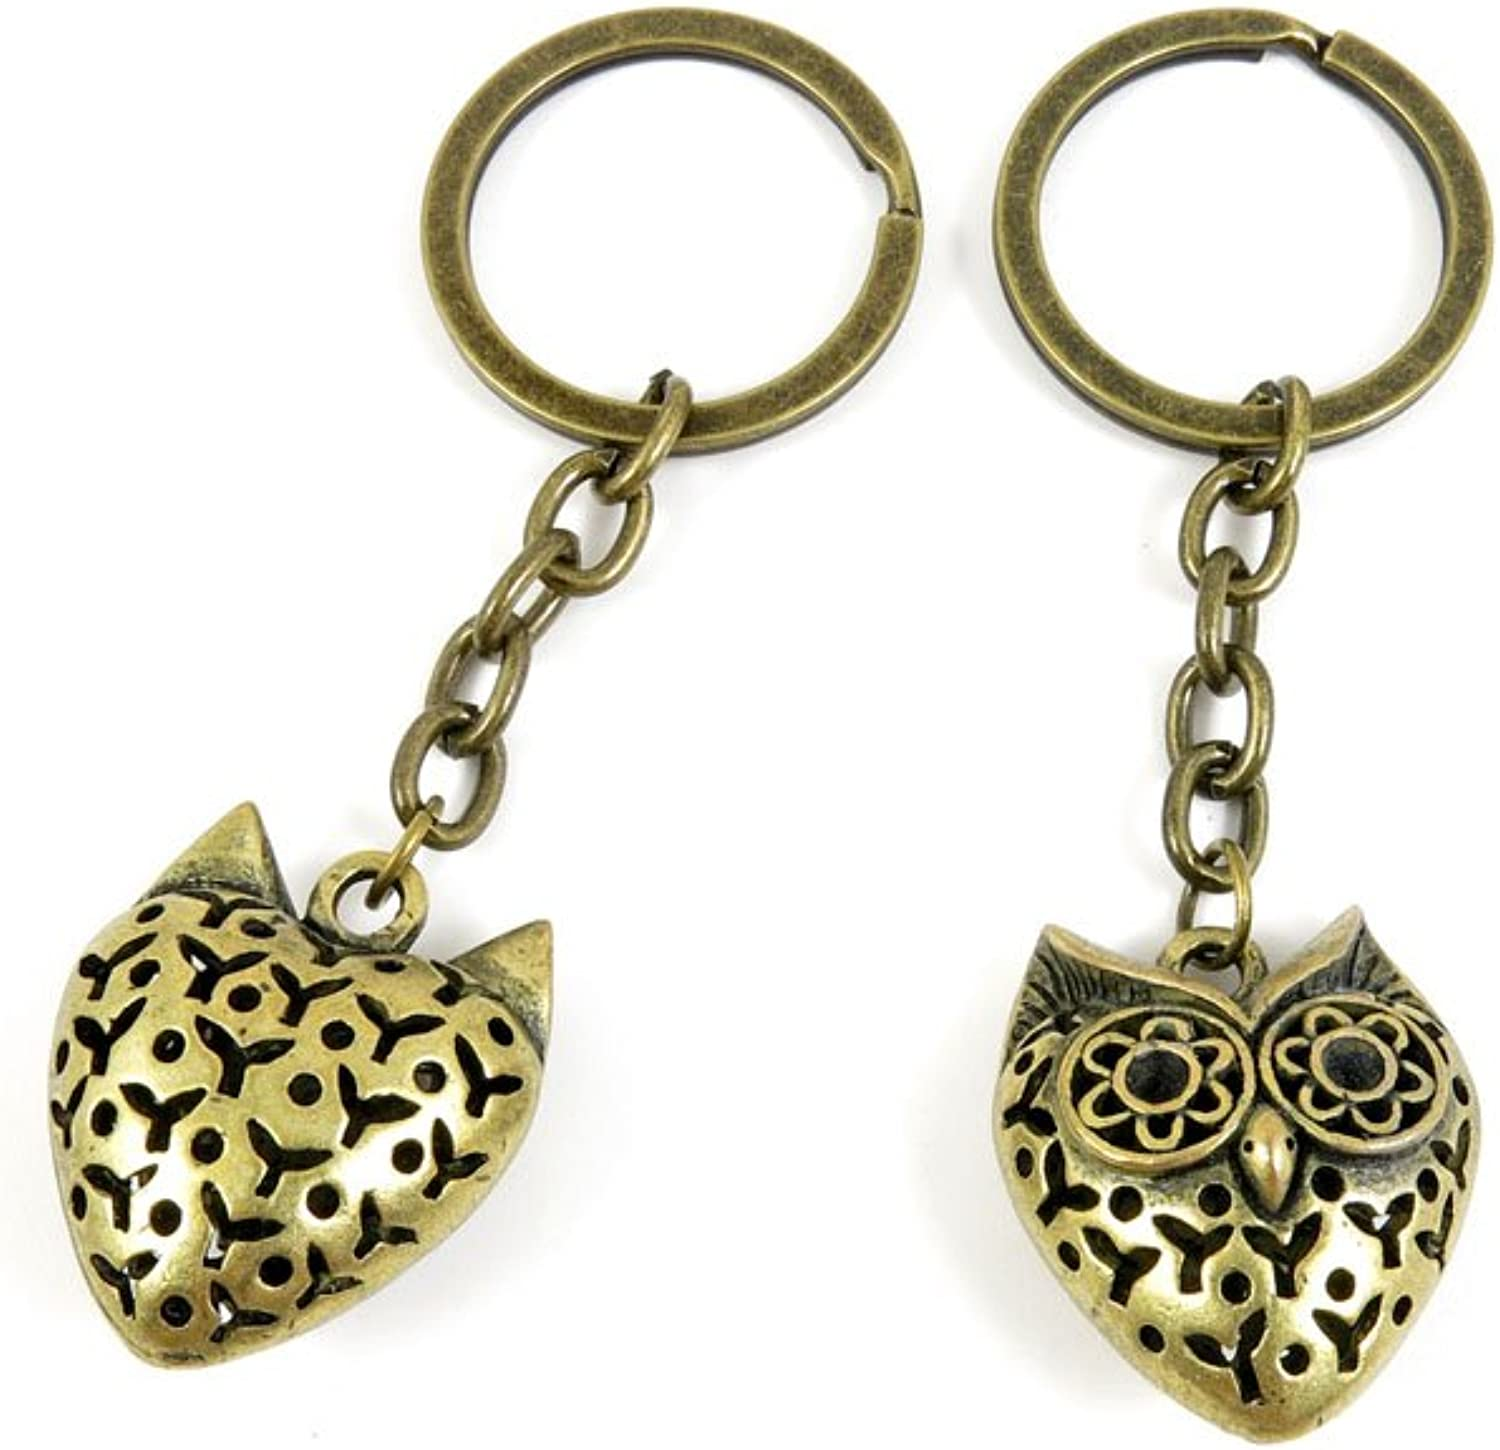 100 PCS Keyrings Keychains Key Ring Chains Tags Jewelry Findings Clasps Buckles Supplies E6LU3 Hollow Owl